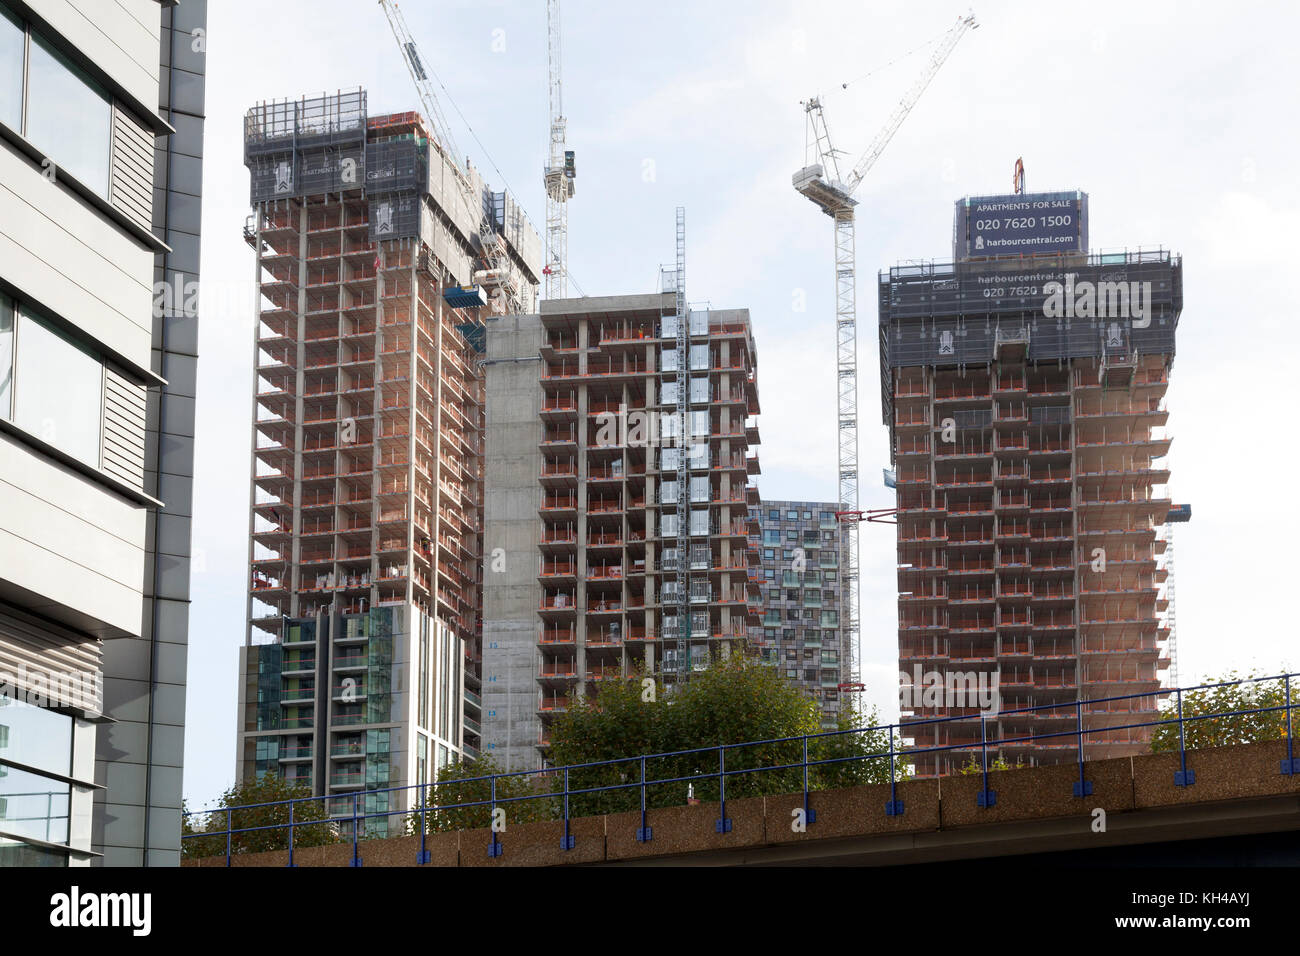 New apartments under construction at Canary Wharf, London - Stock Image